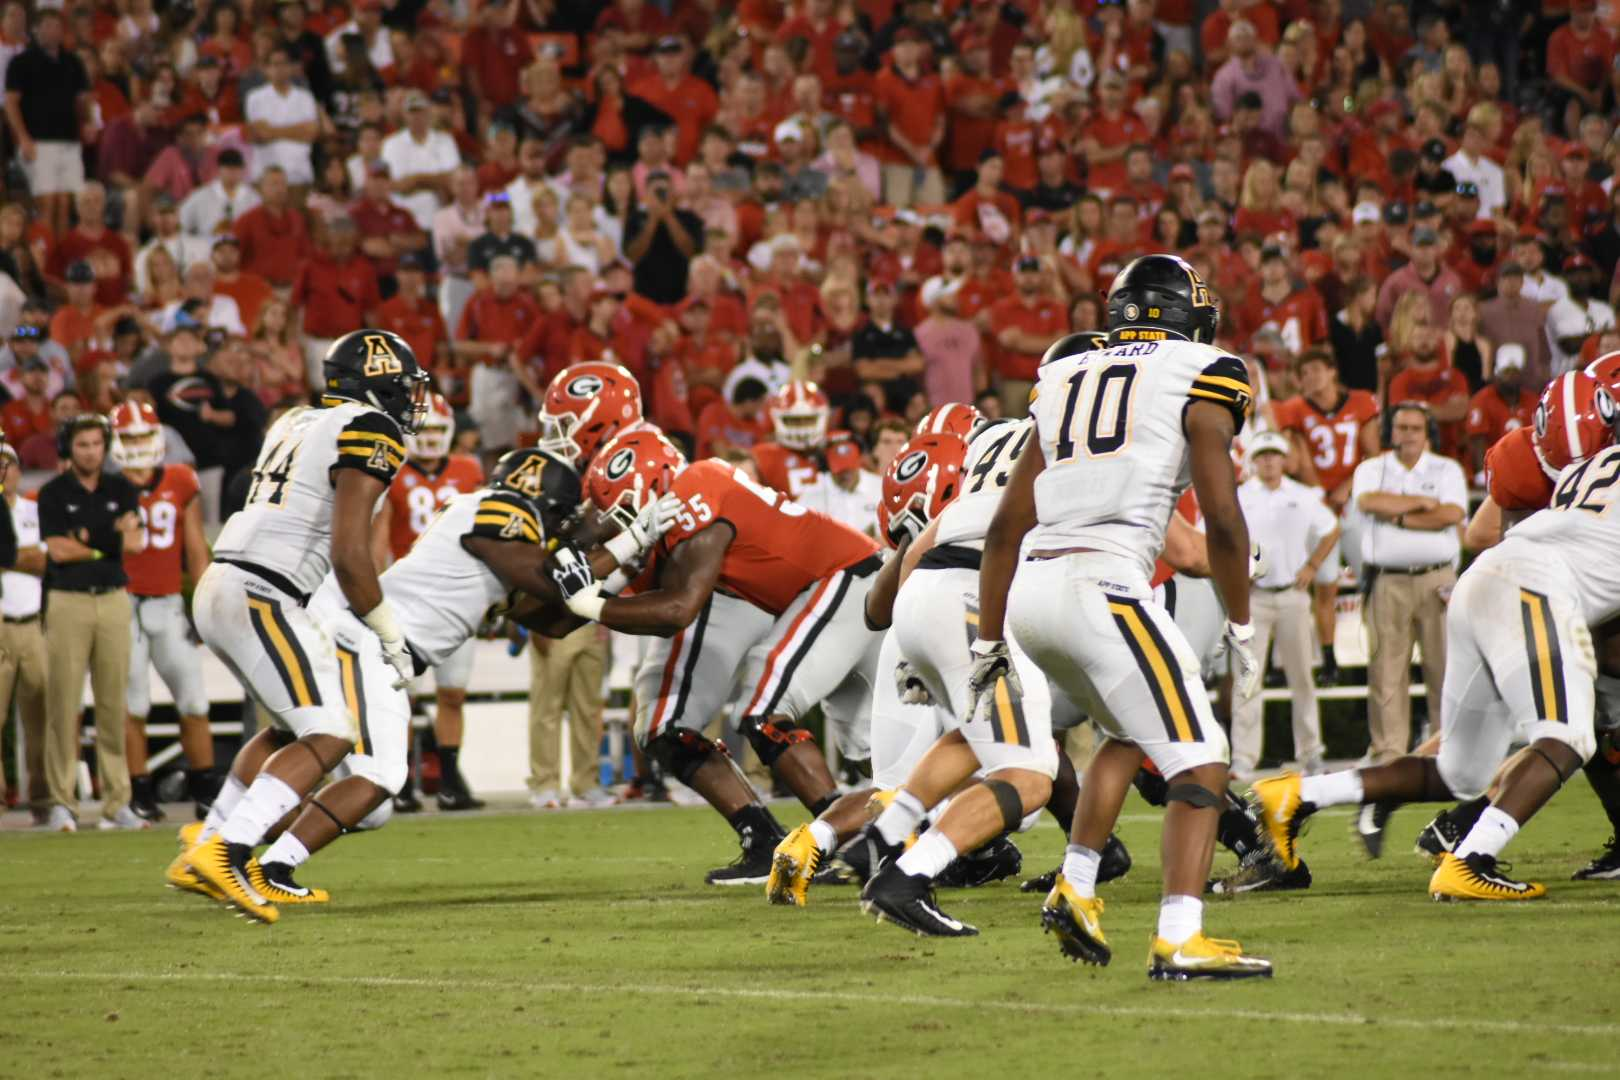 App State fell to Georgia 31-10 on Saturday evening in a game broadcasted on ESPN